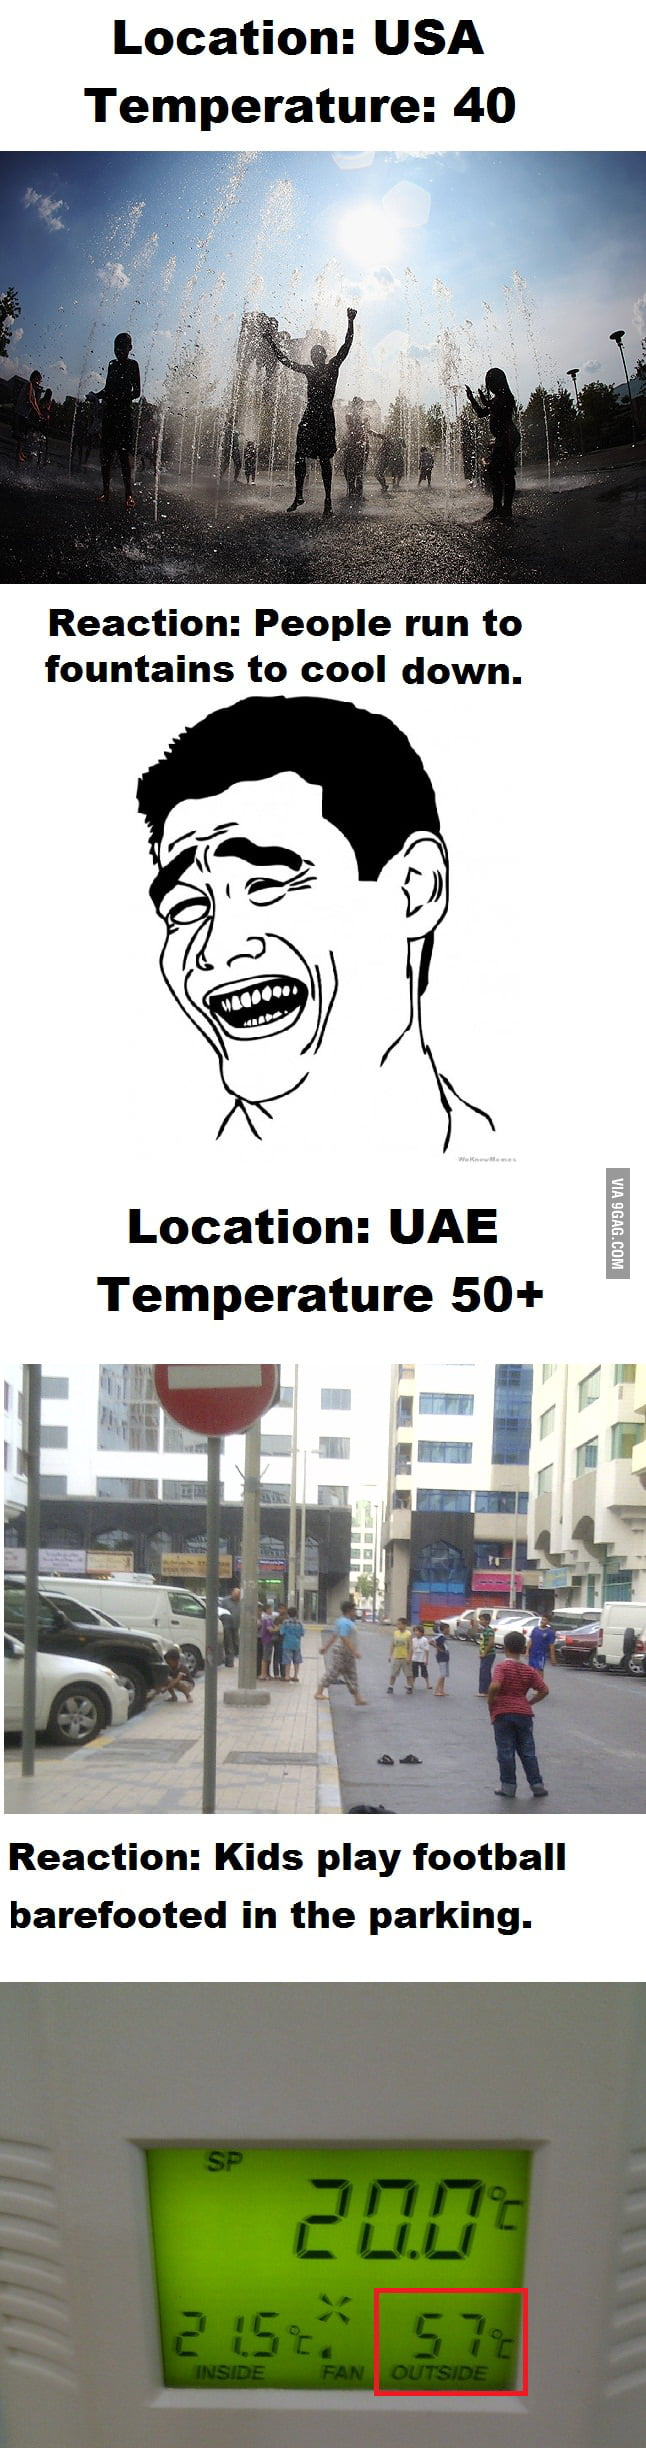 Meanwhile In UAE